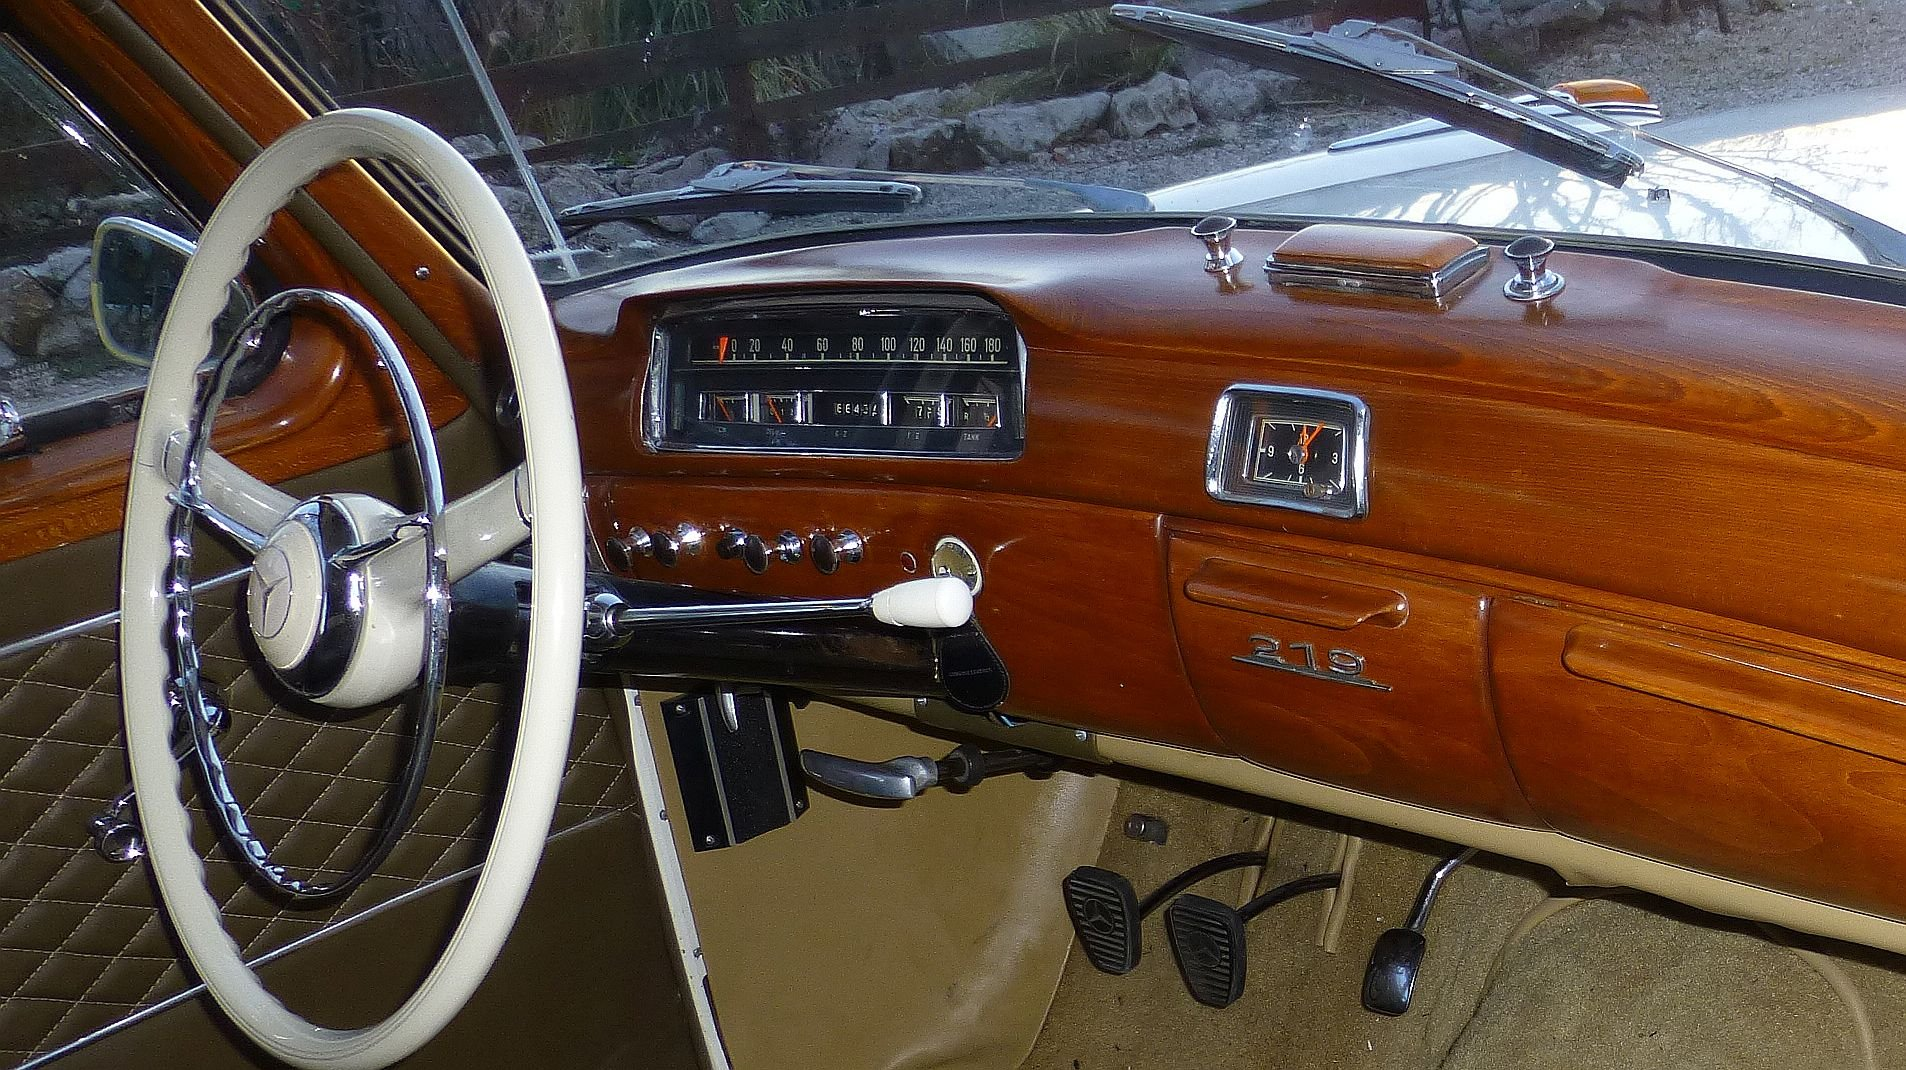 1957 Very RARE Executive Modell with orig. KM   For Sale (picture 4 of 6)